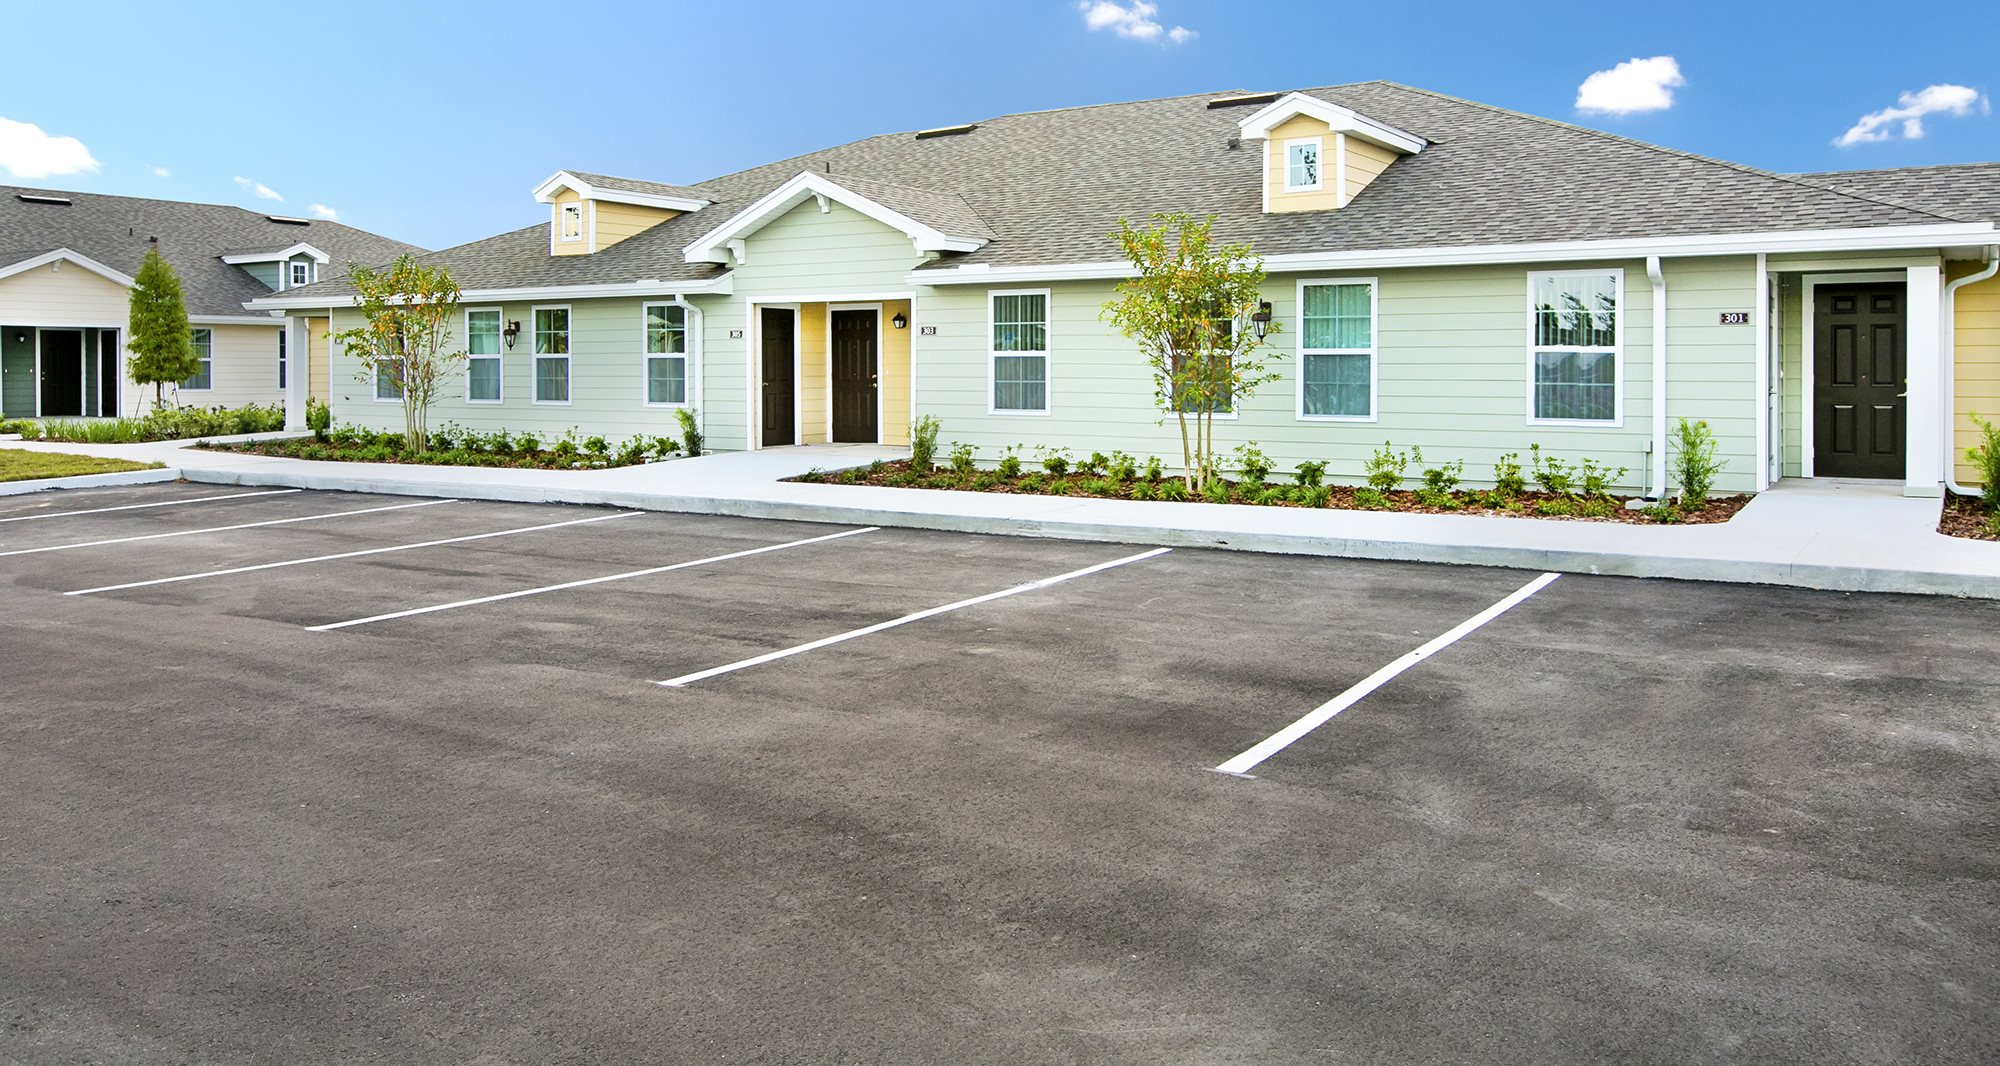 Saxon Cove Senior Living Apartments for rent in DeBary, FL. Make this community your new home or visit other Concord Rents communities at ConcordRents.com. Building exterior